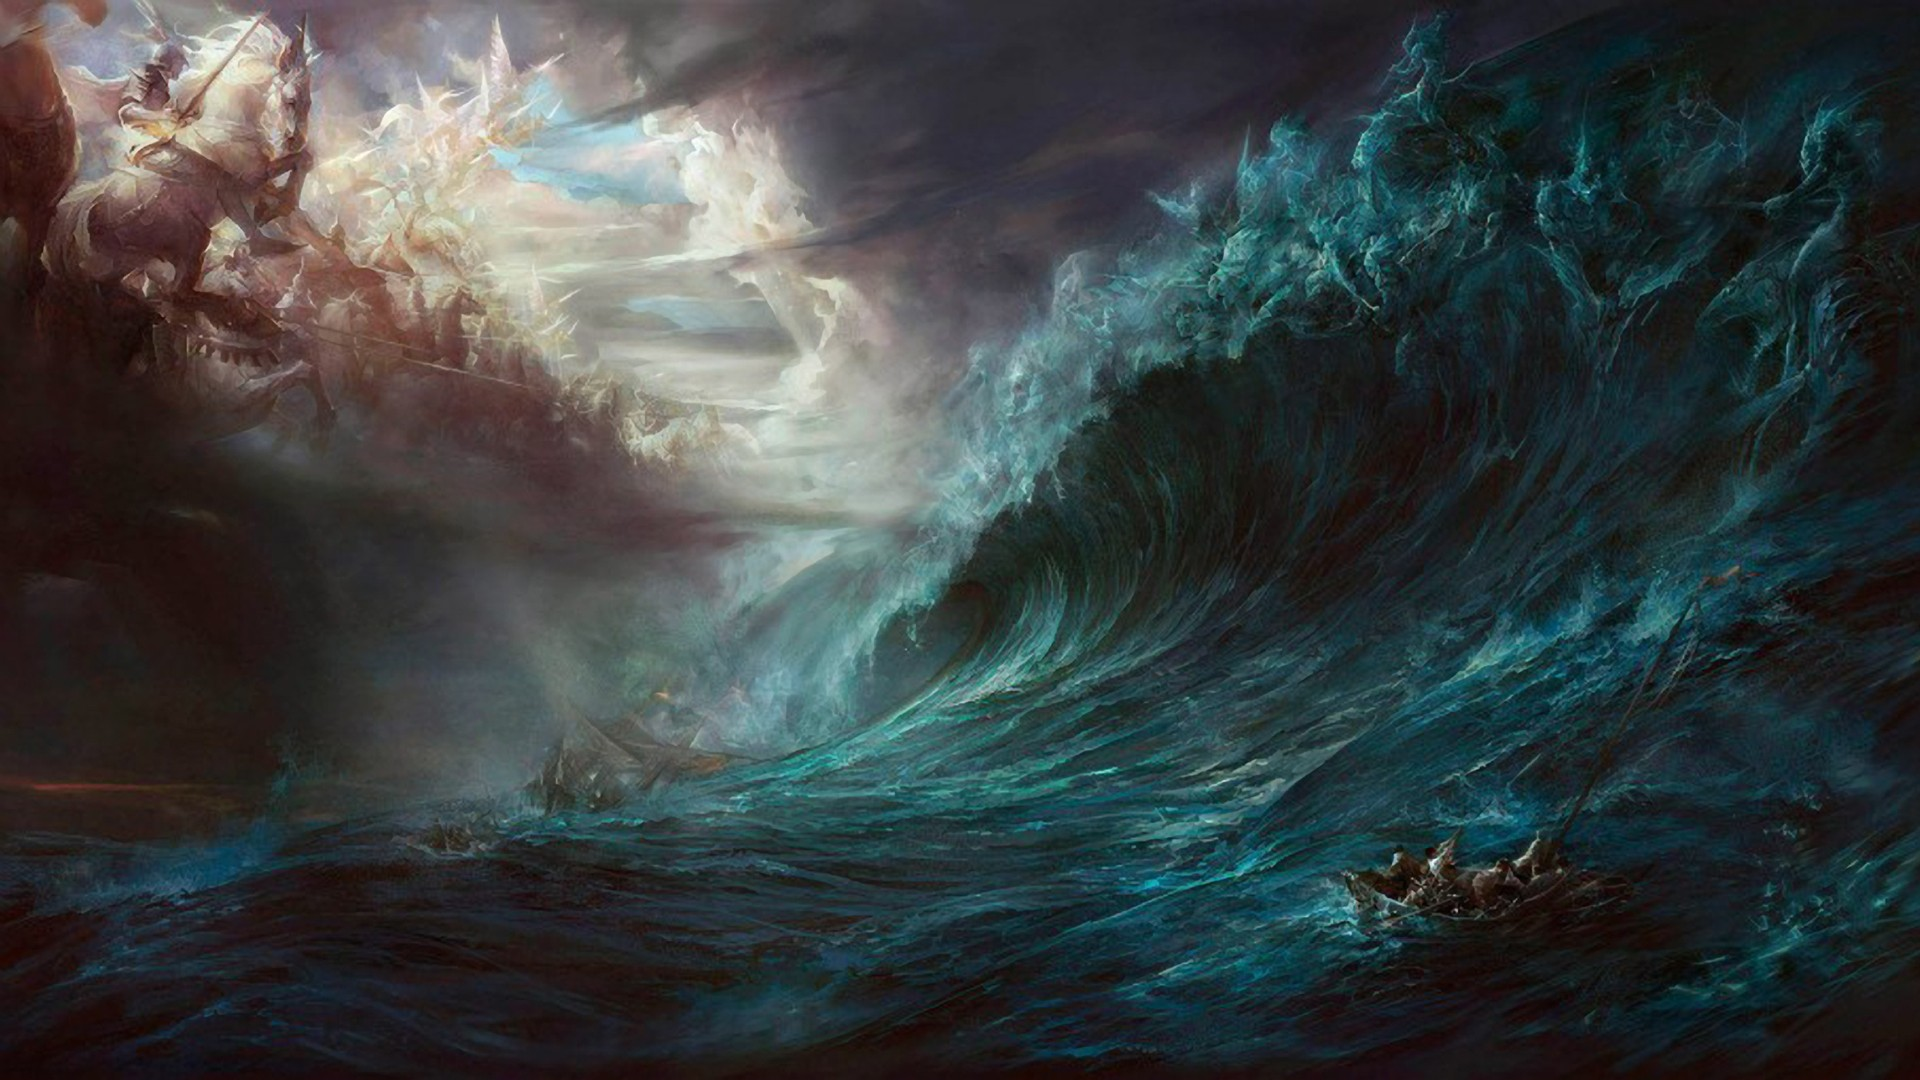 775469/800497-battles-clouds-fantasy-fantasy-art-horses-landscapes-ocean-seahorses-ships-storm-sunlight-waves.jpg.jpg